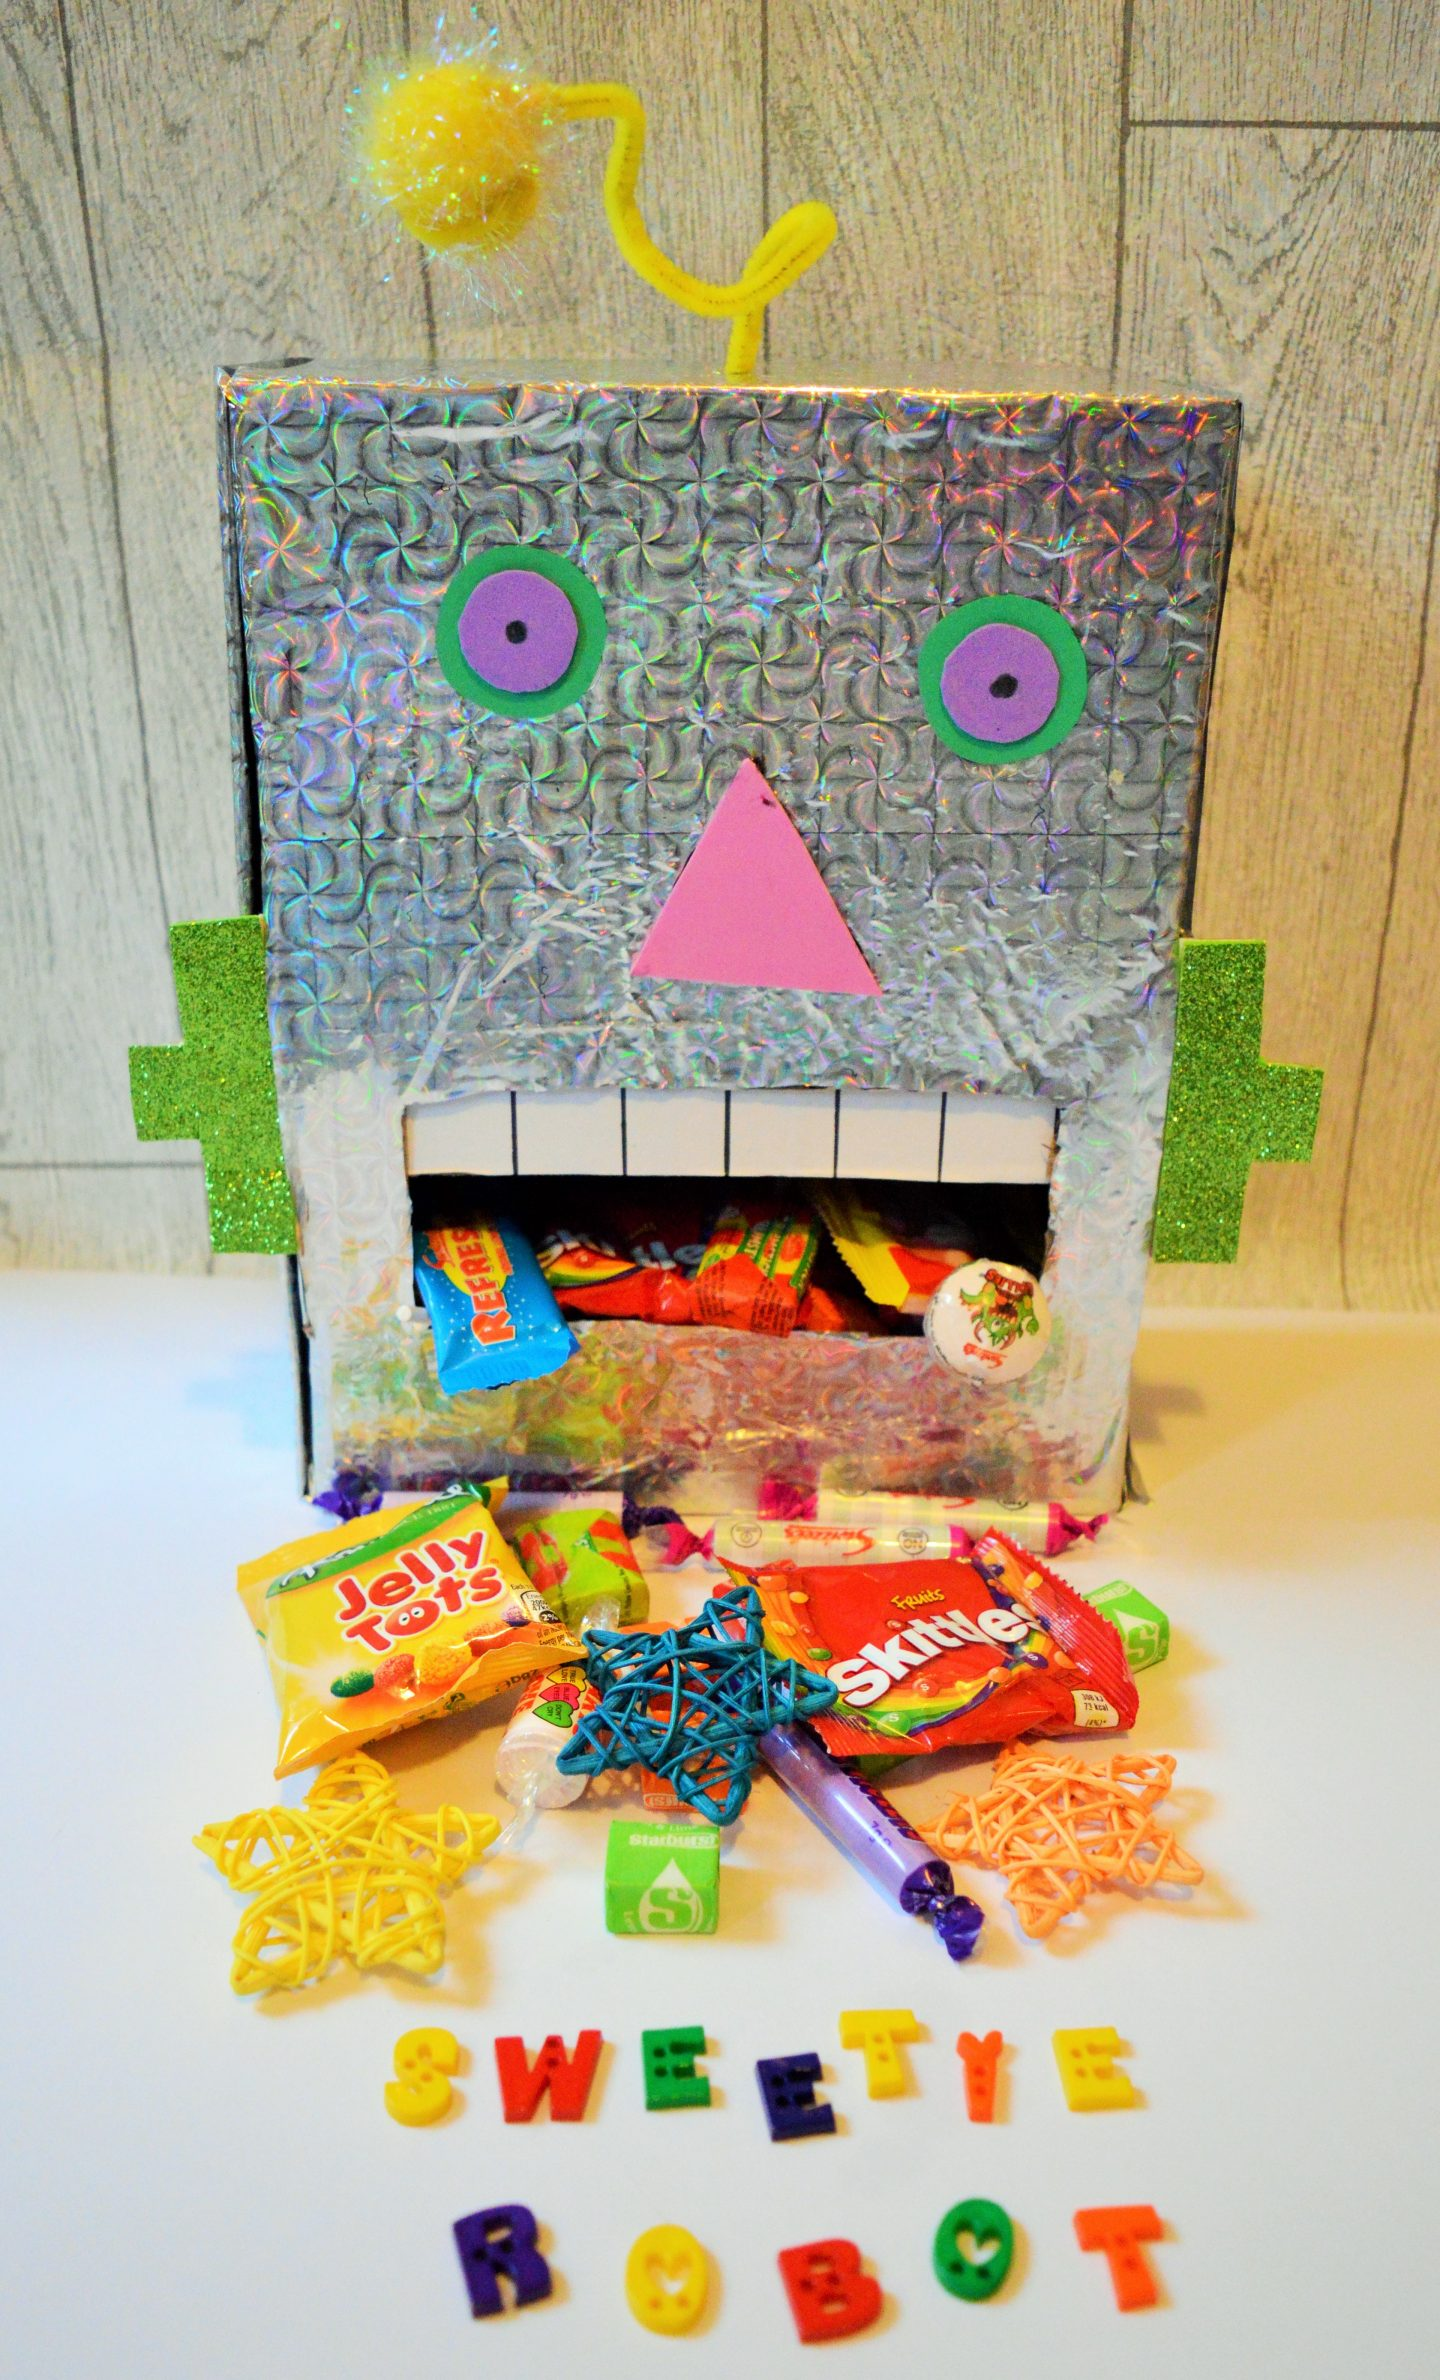 Make a Sweetie Robot Craft complete robot with sweeties coming out its mouth